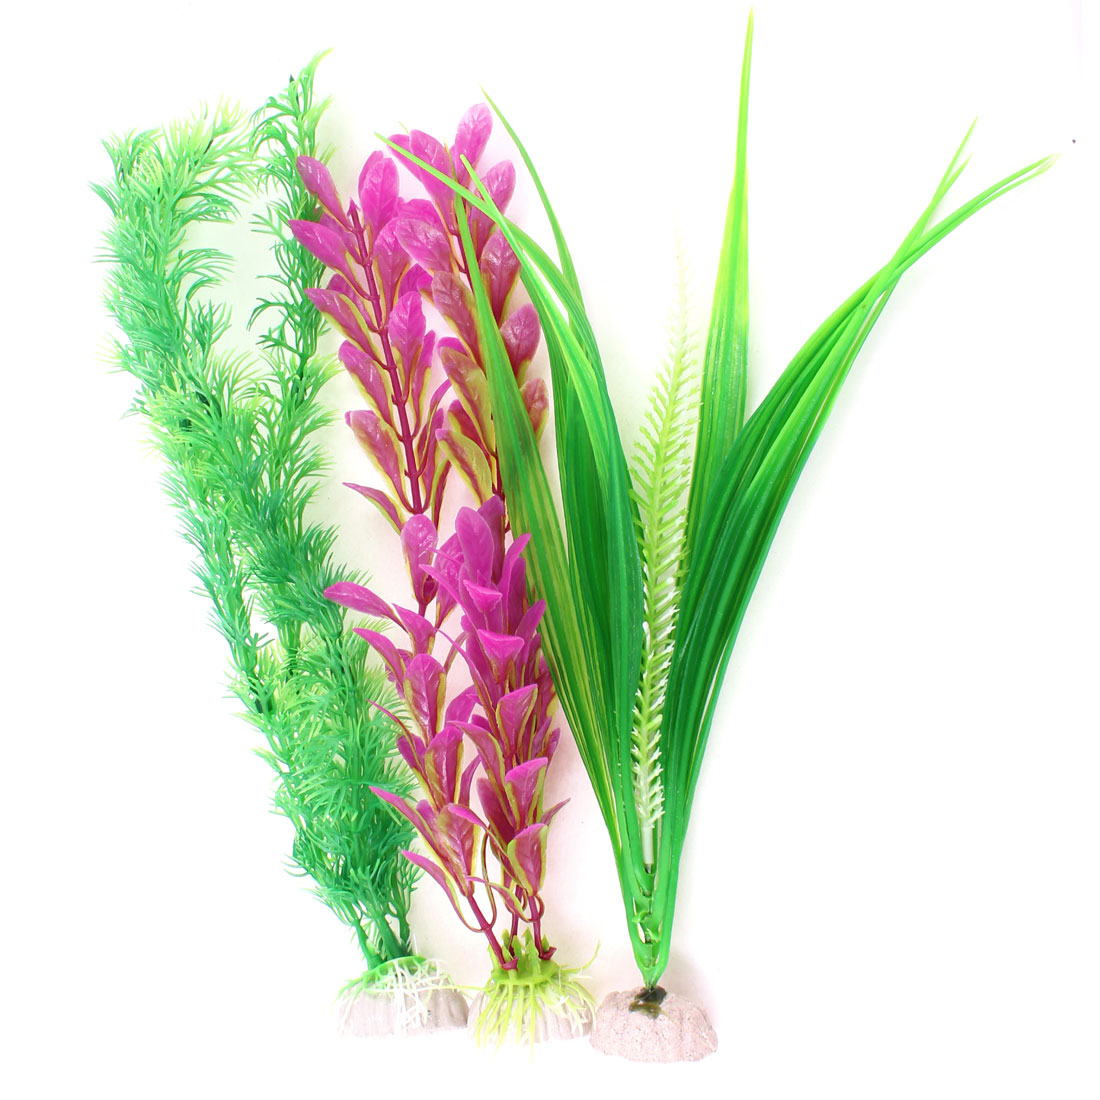 Unique Bargains Fuchsia Green Artificial Aquarium Decor Water Grass Plant 3PCS